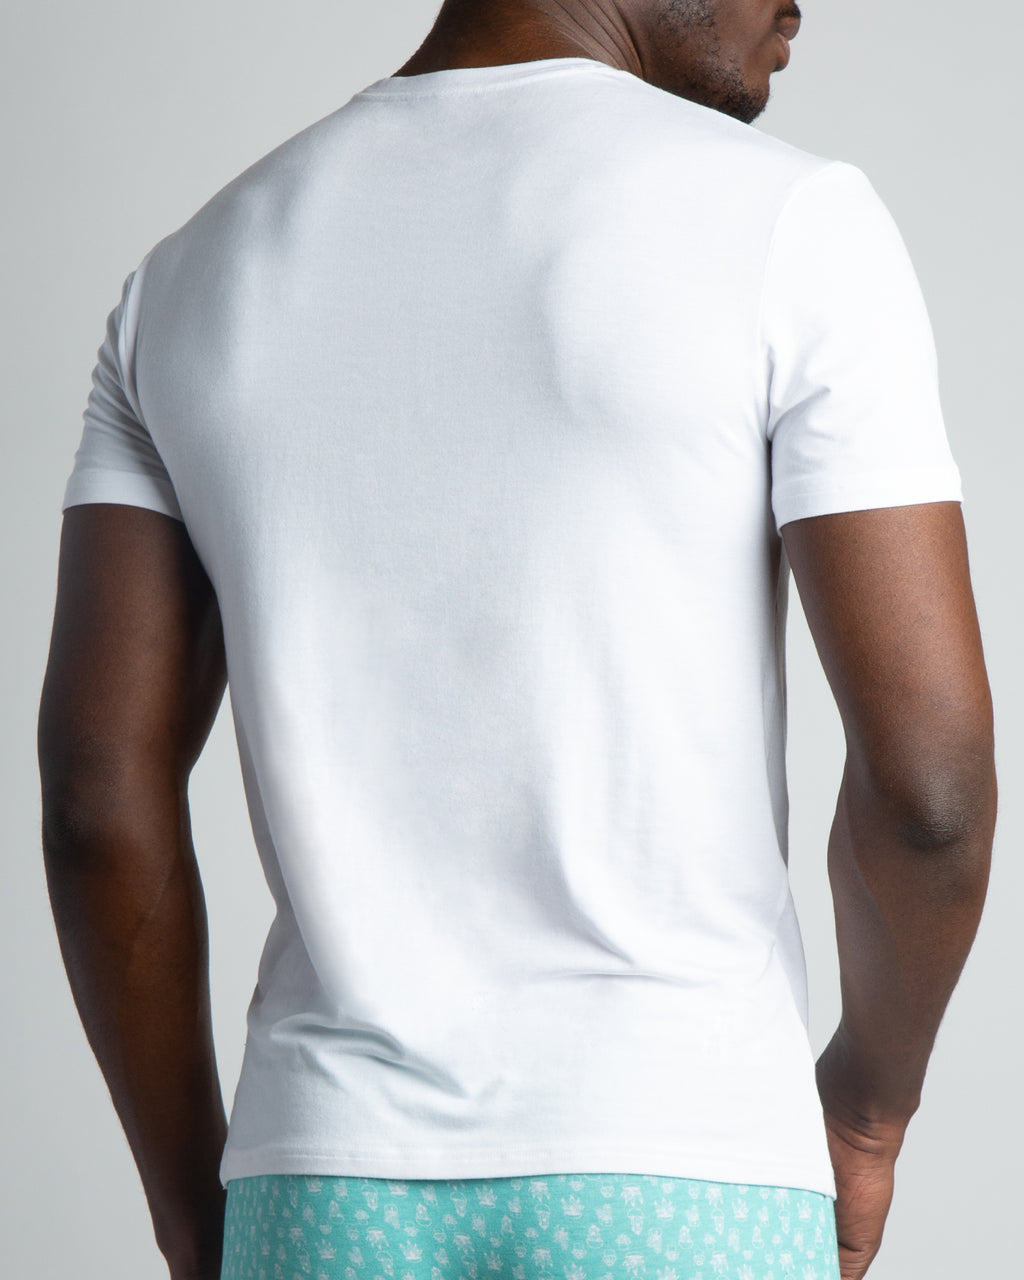 ELEMENT Cotton/Modal Short Sleeve Crew Neck Tee